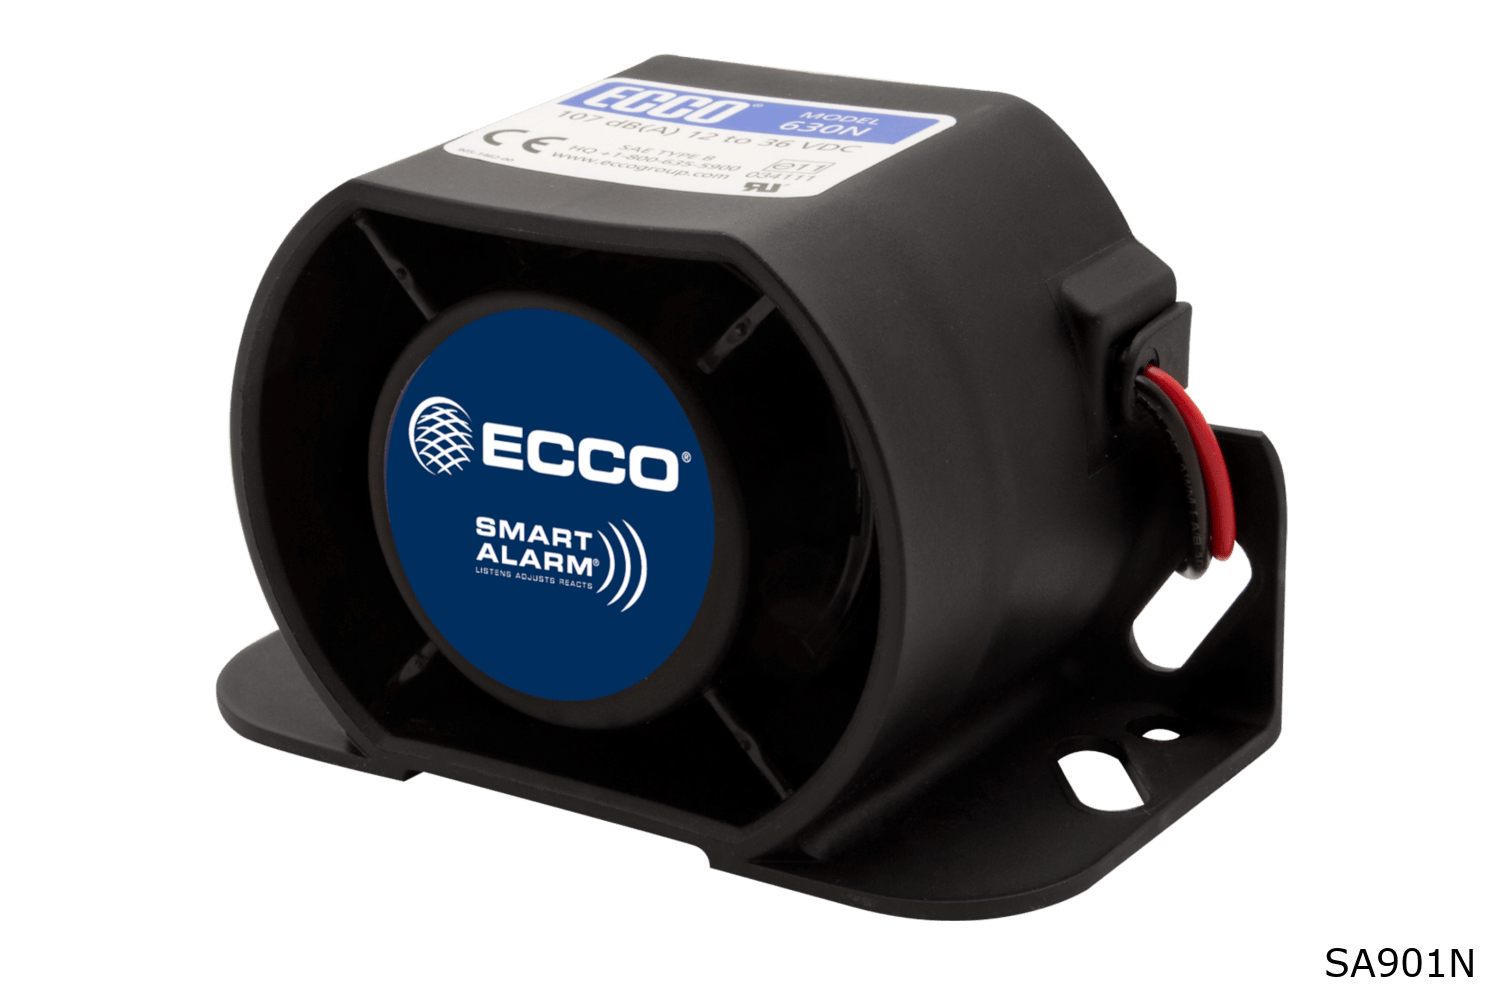 ecco back up alarms sa901n